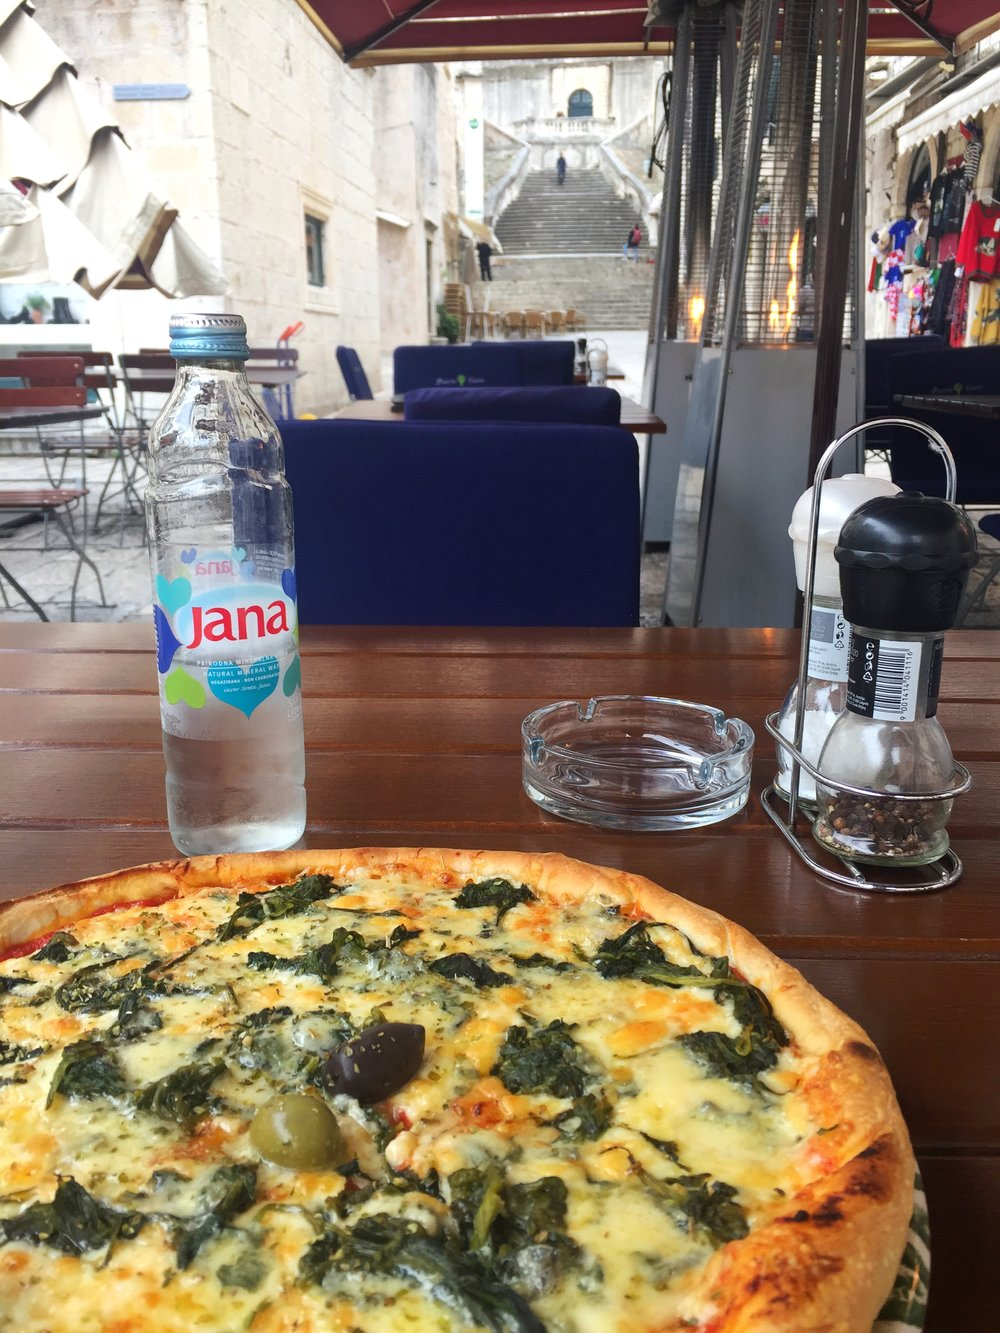 spinach pizza (Dubrovnik)